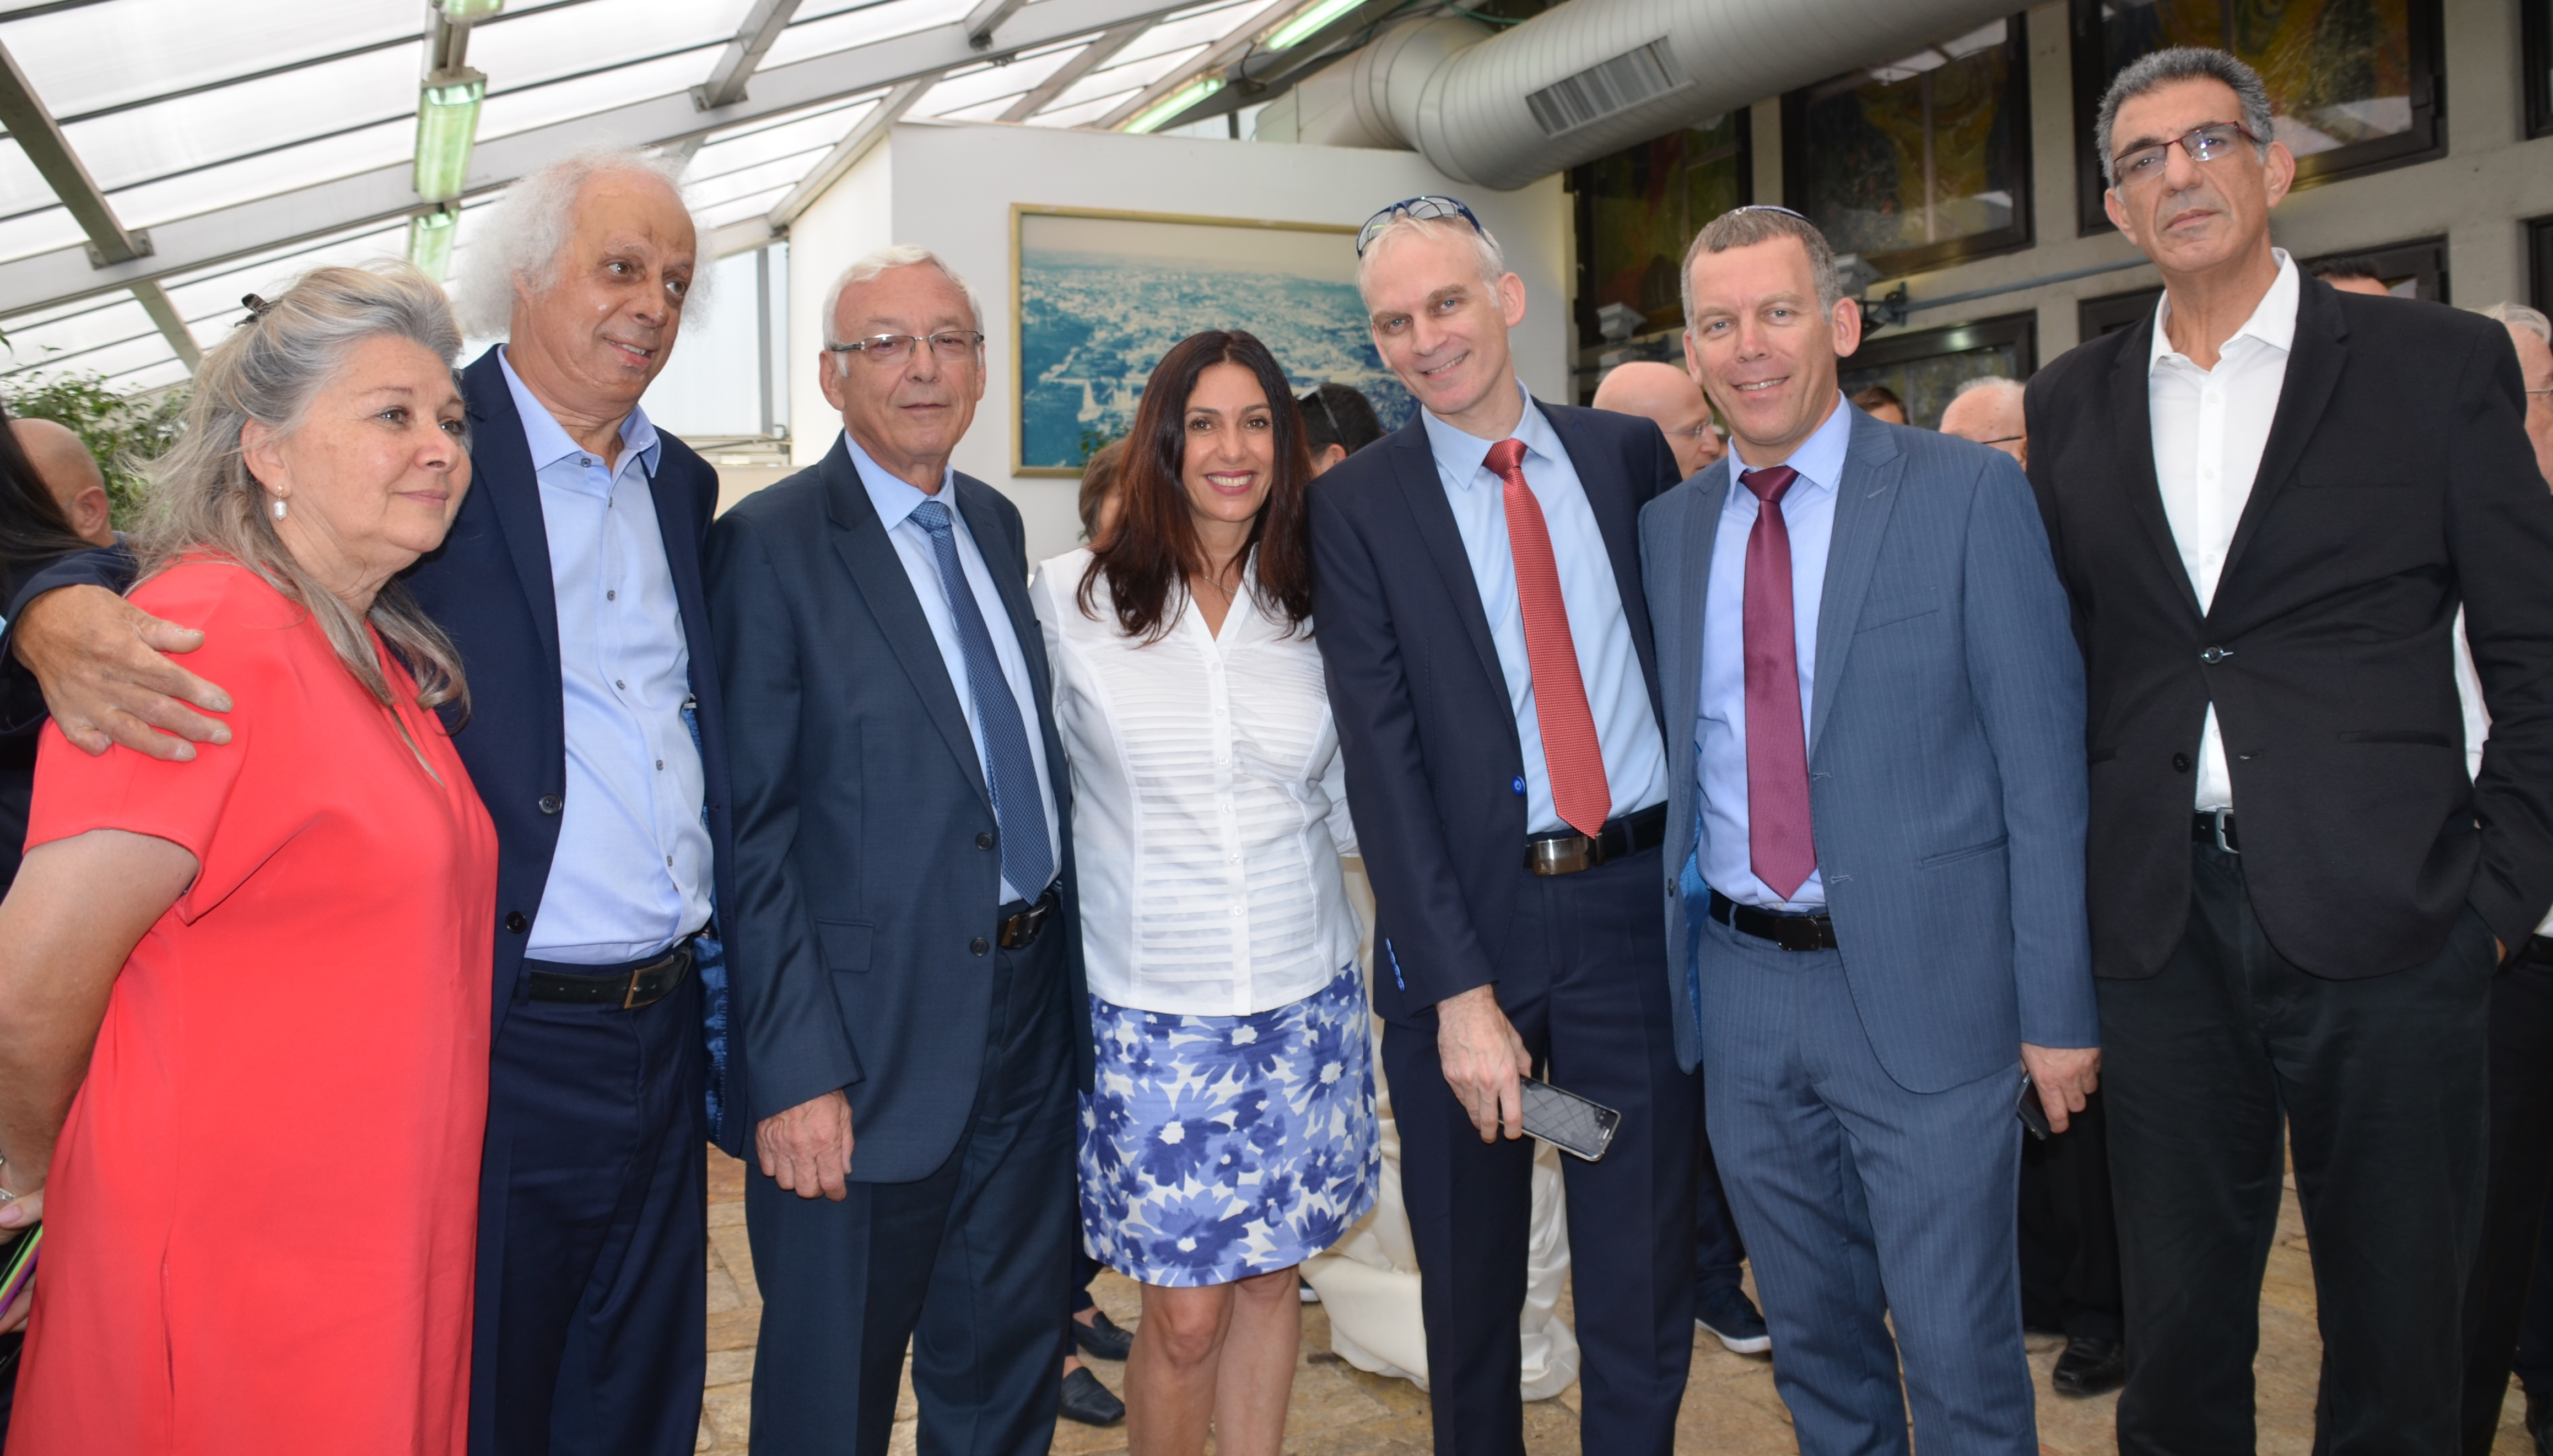 Miri Regev at Bet Hanasi for sendoff of Israel Olympic teams to Rio